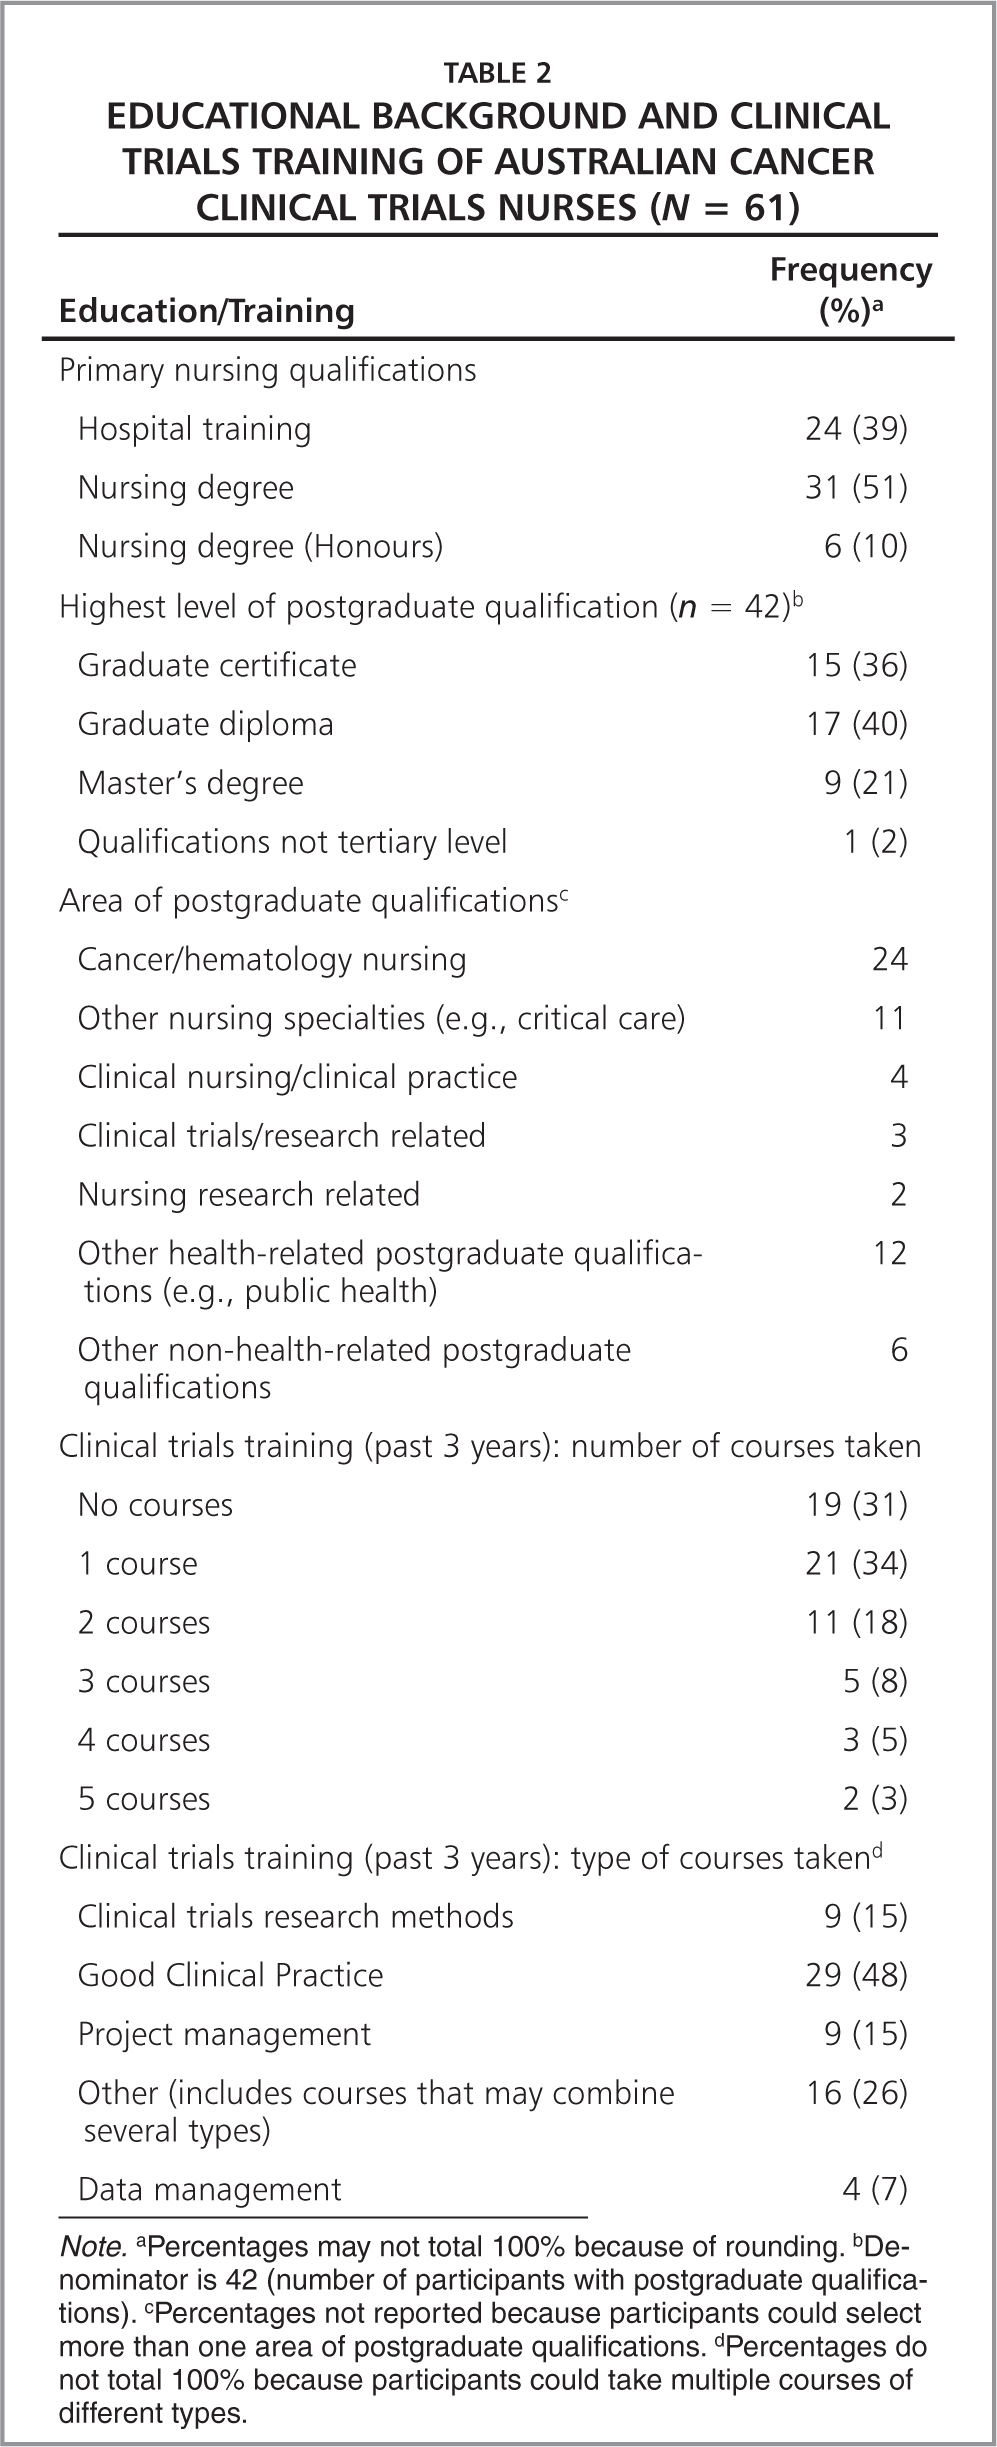 Educational Background and Clinical Trials Training of Australian Cancer Clinical Trials Nurses (N = 61)